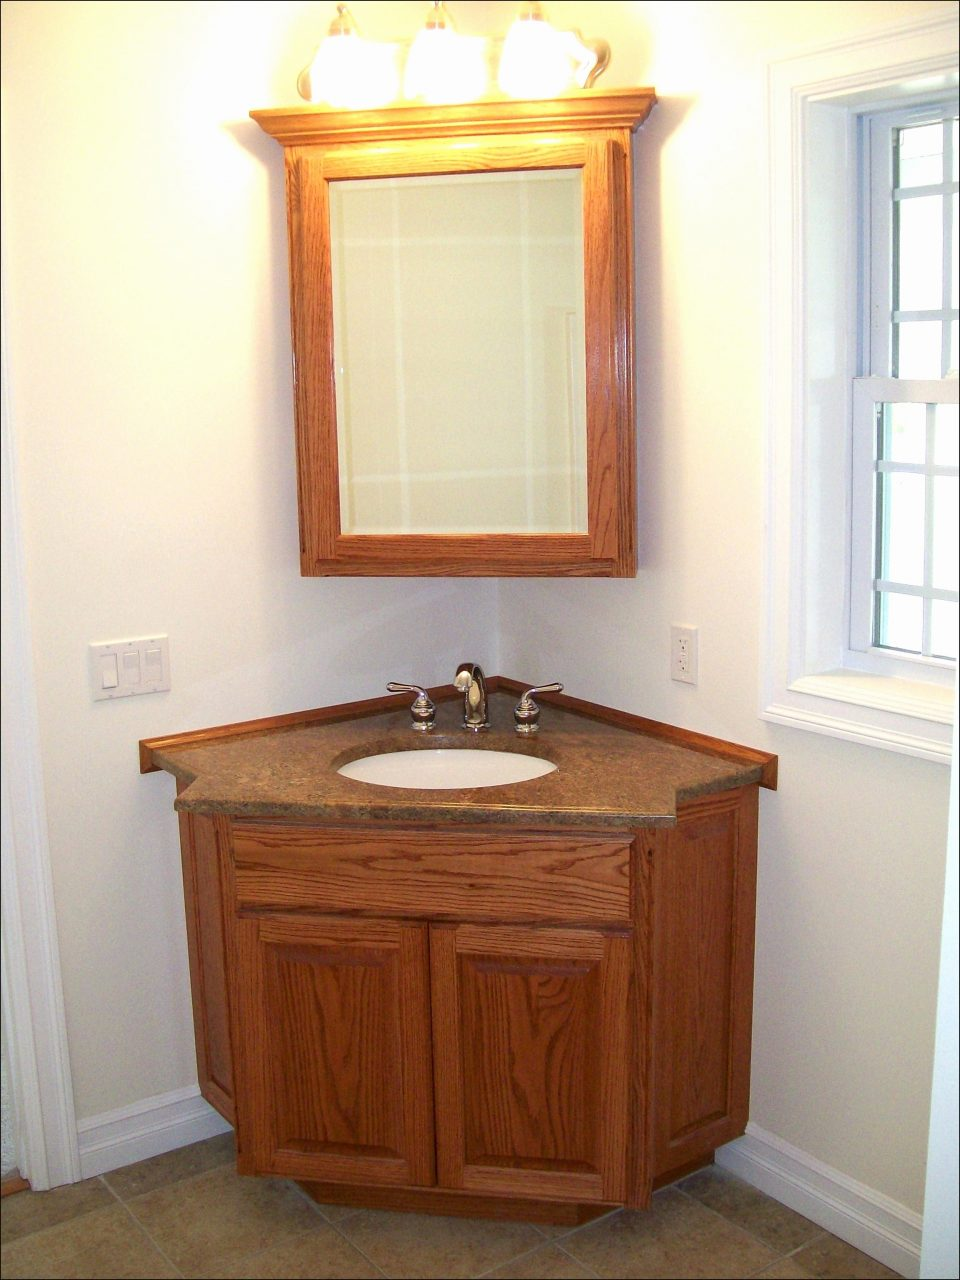 Bathroom Vanities Under 300 Redecorating Bathroom On A Budget Lowes